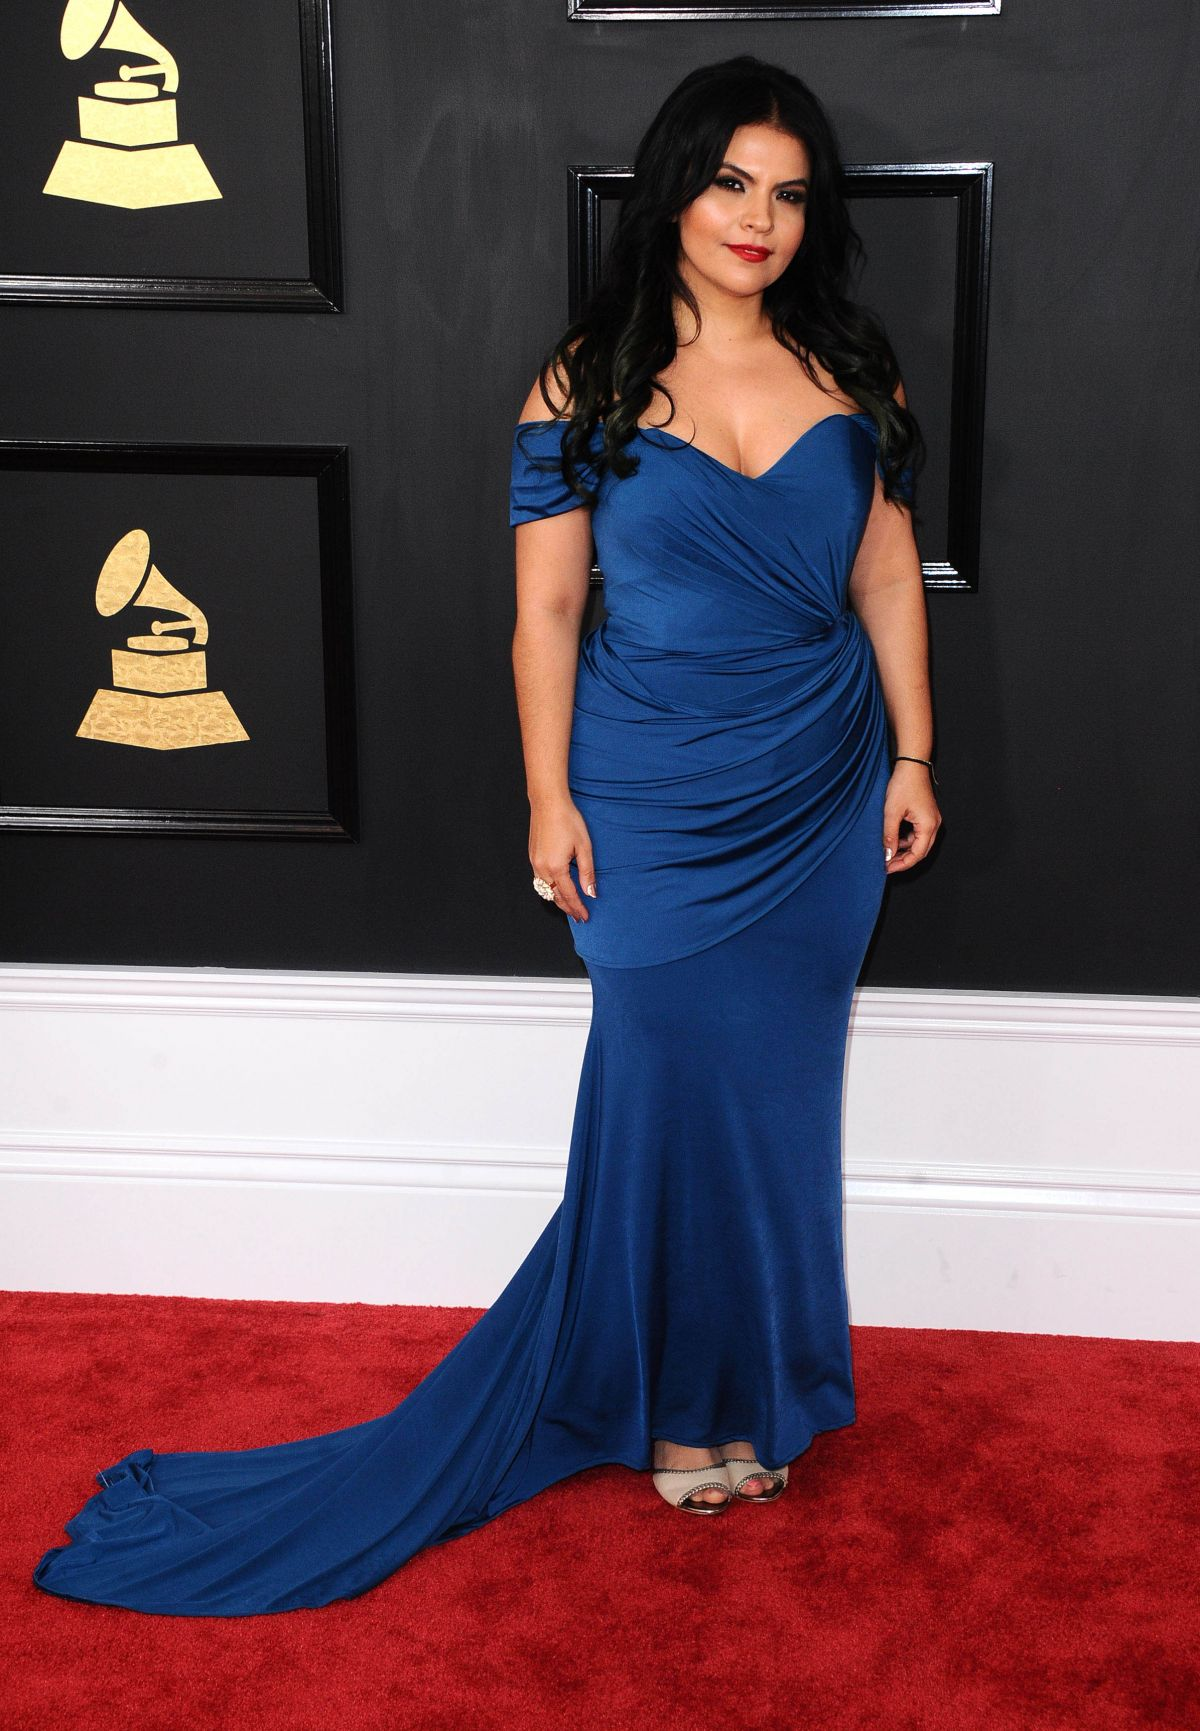 VASSY at 59th Annual Grammy Awards in Los Angeles 02/12/2017